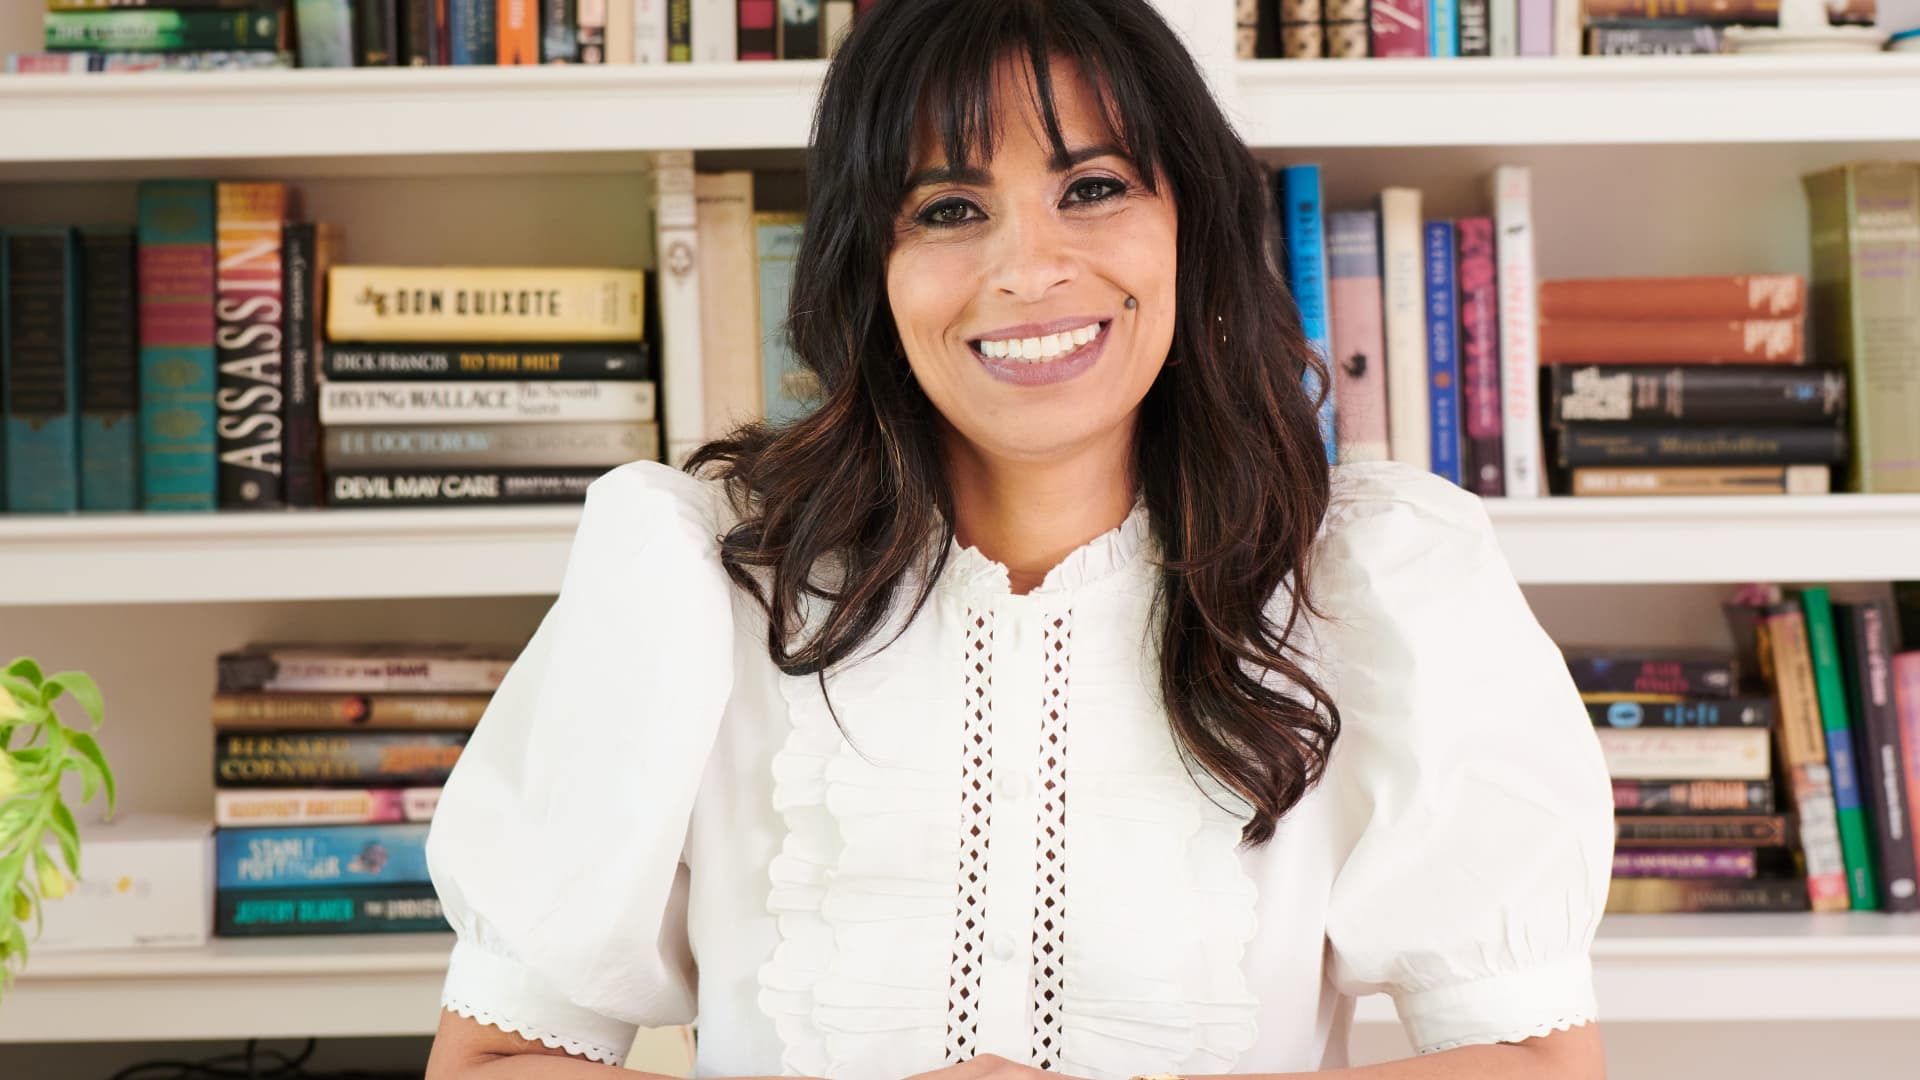 Founding Partner of Female Founders Fund Anu Duggal.